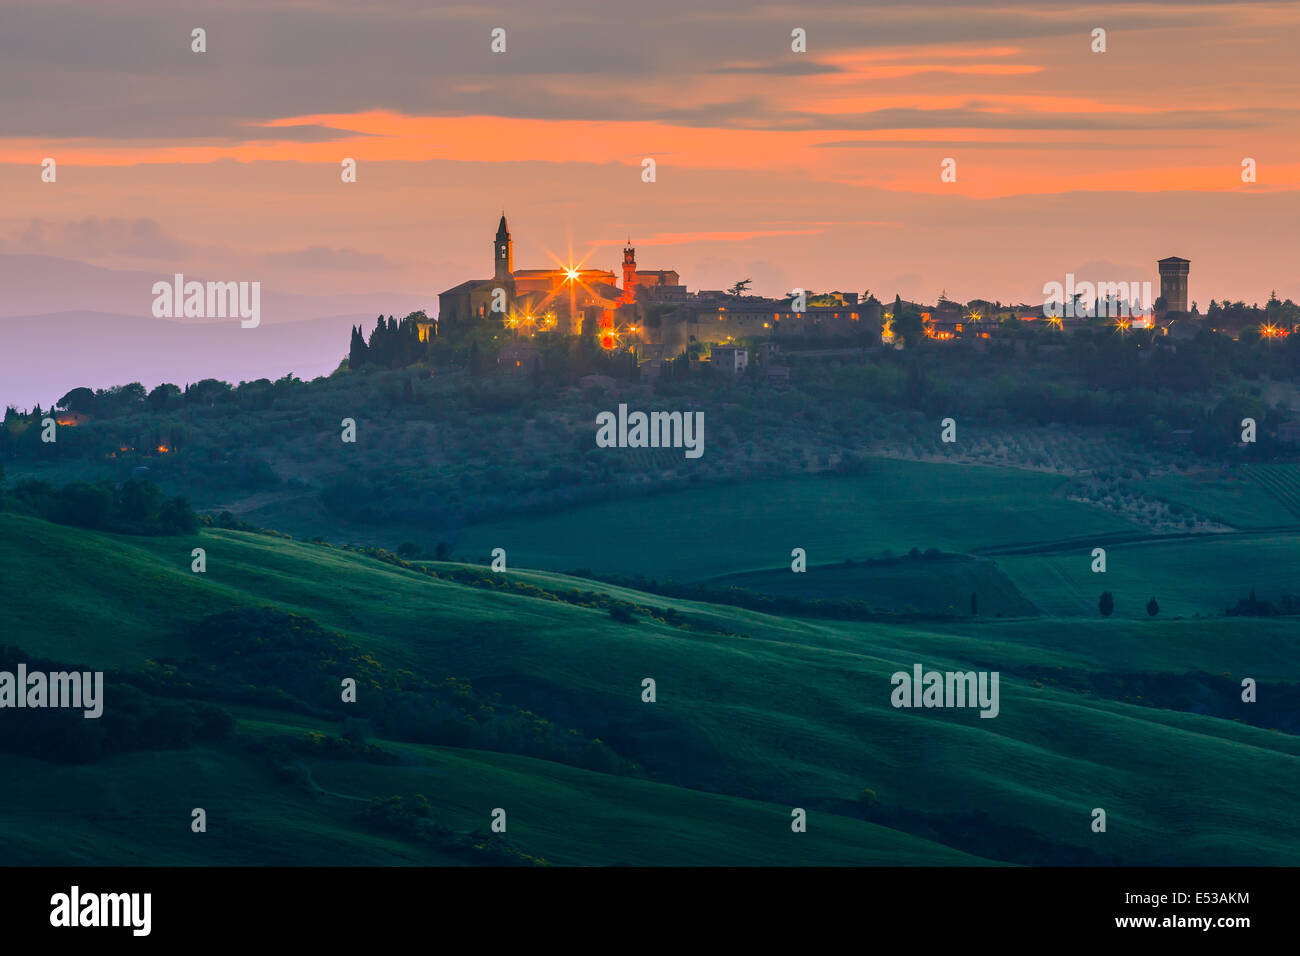 Pienza at sunset, taken from Monticchiello in the heart of the Tuscany, Italy - Stock Image